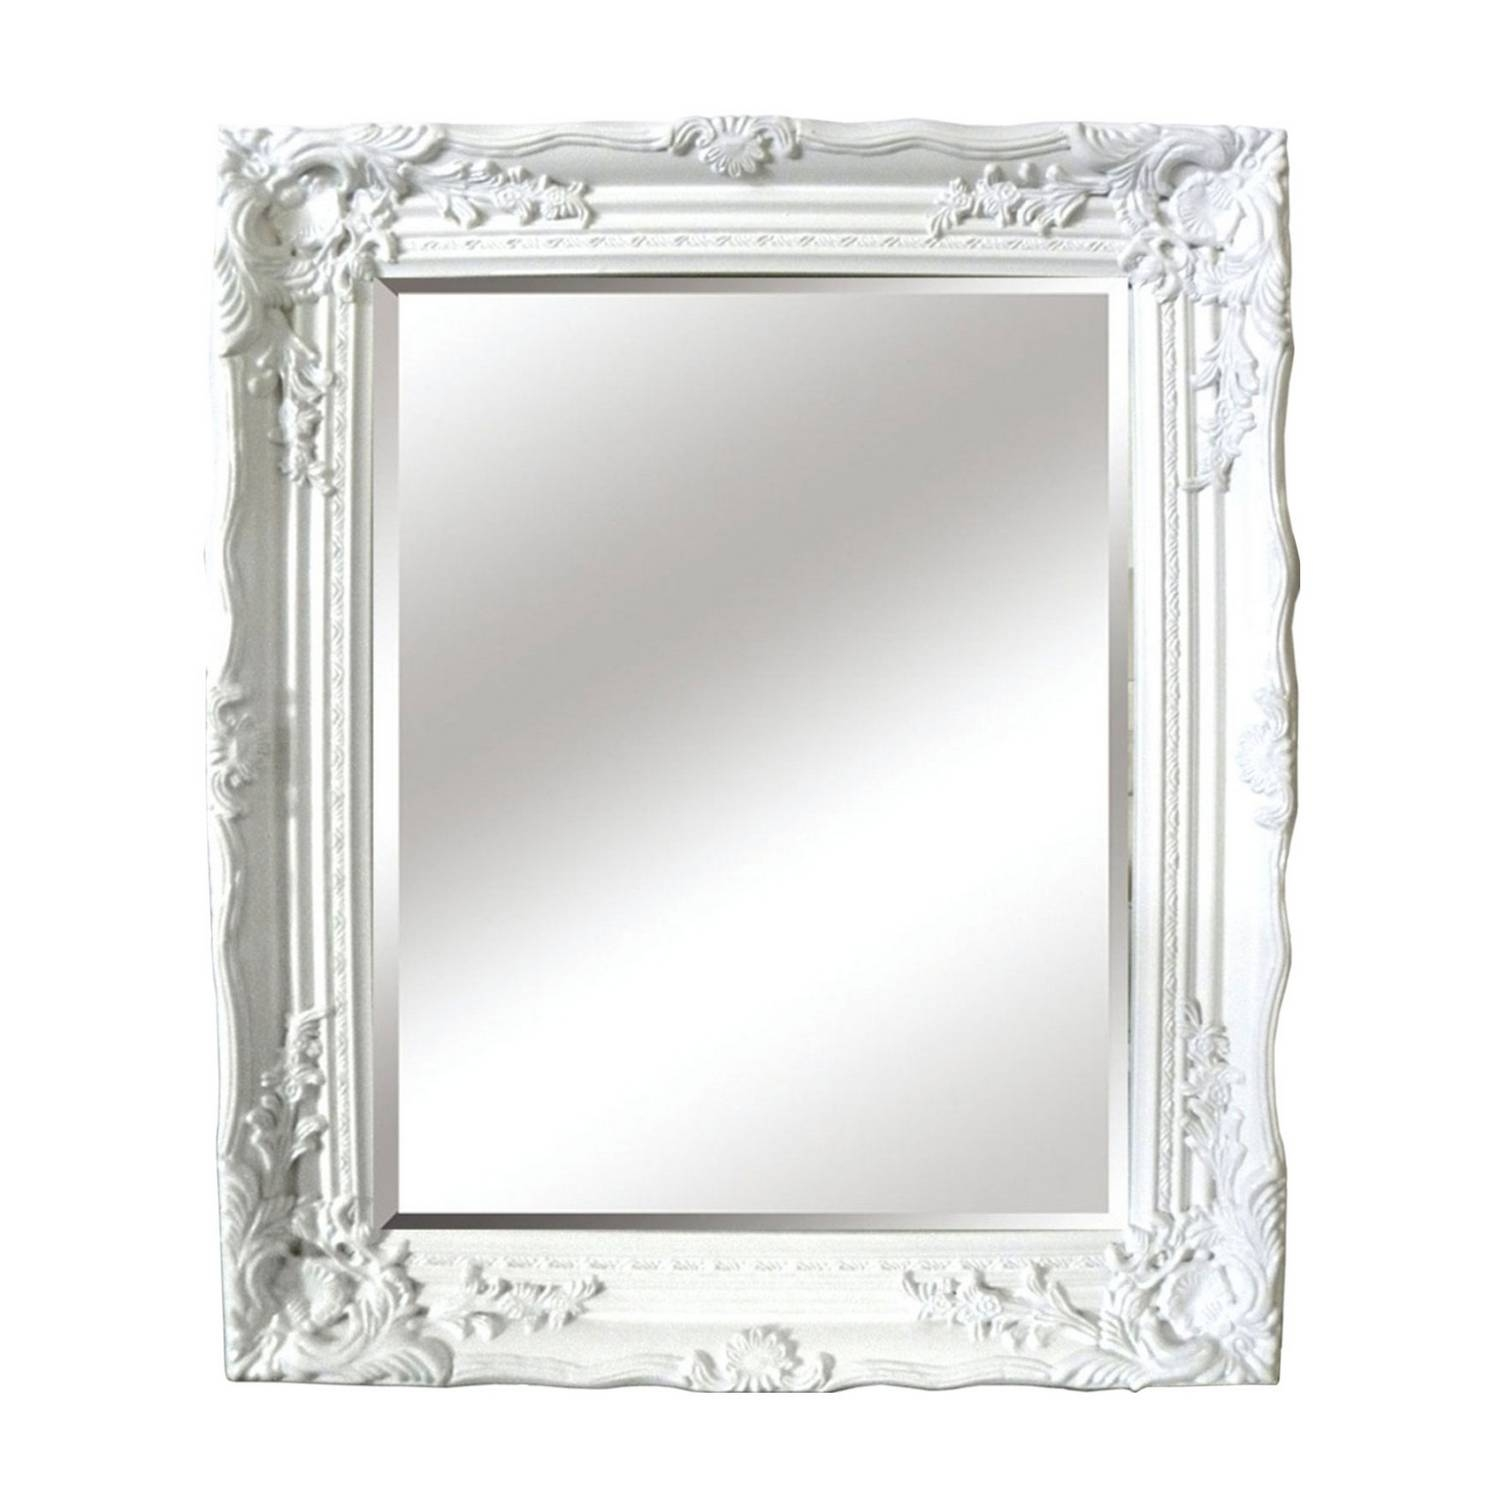 Buy Antique White Ornate Mirror Mirrors The Range Home With Regard To Where To Buy Vintage Mirrors (Image 5 of 15)